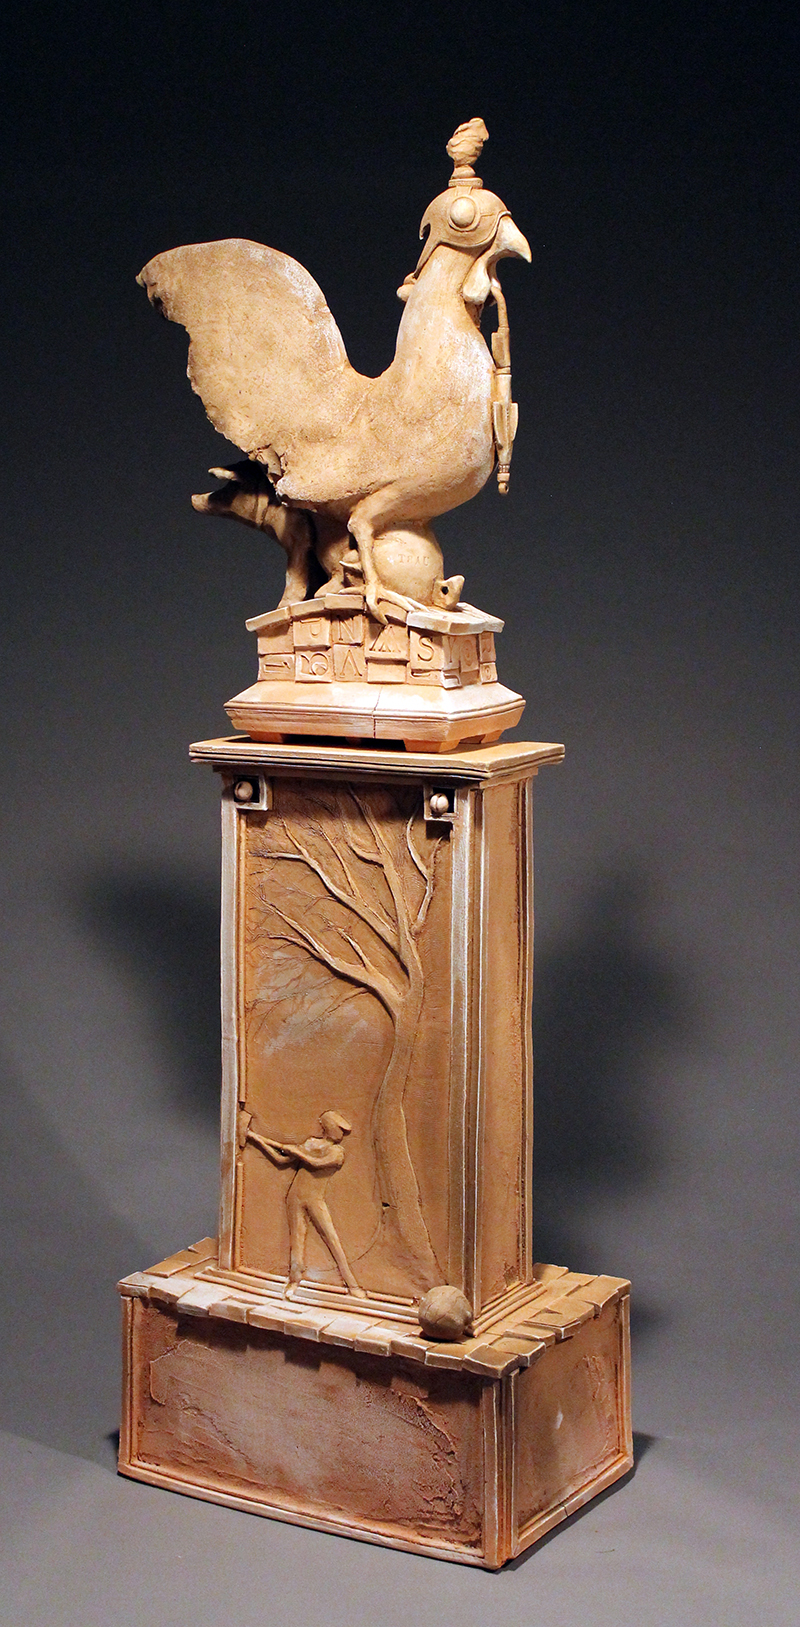 Rooster Stele by Chuck Johnson